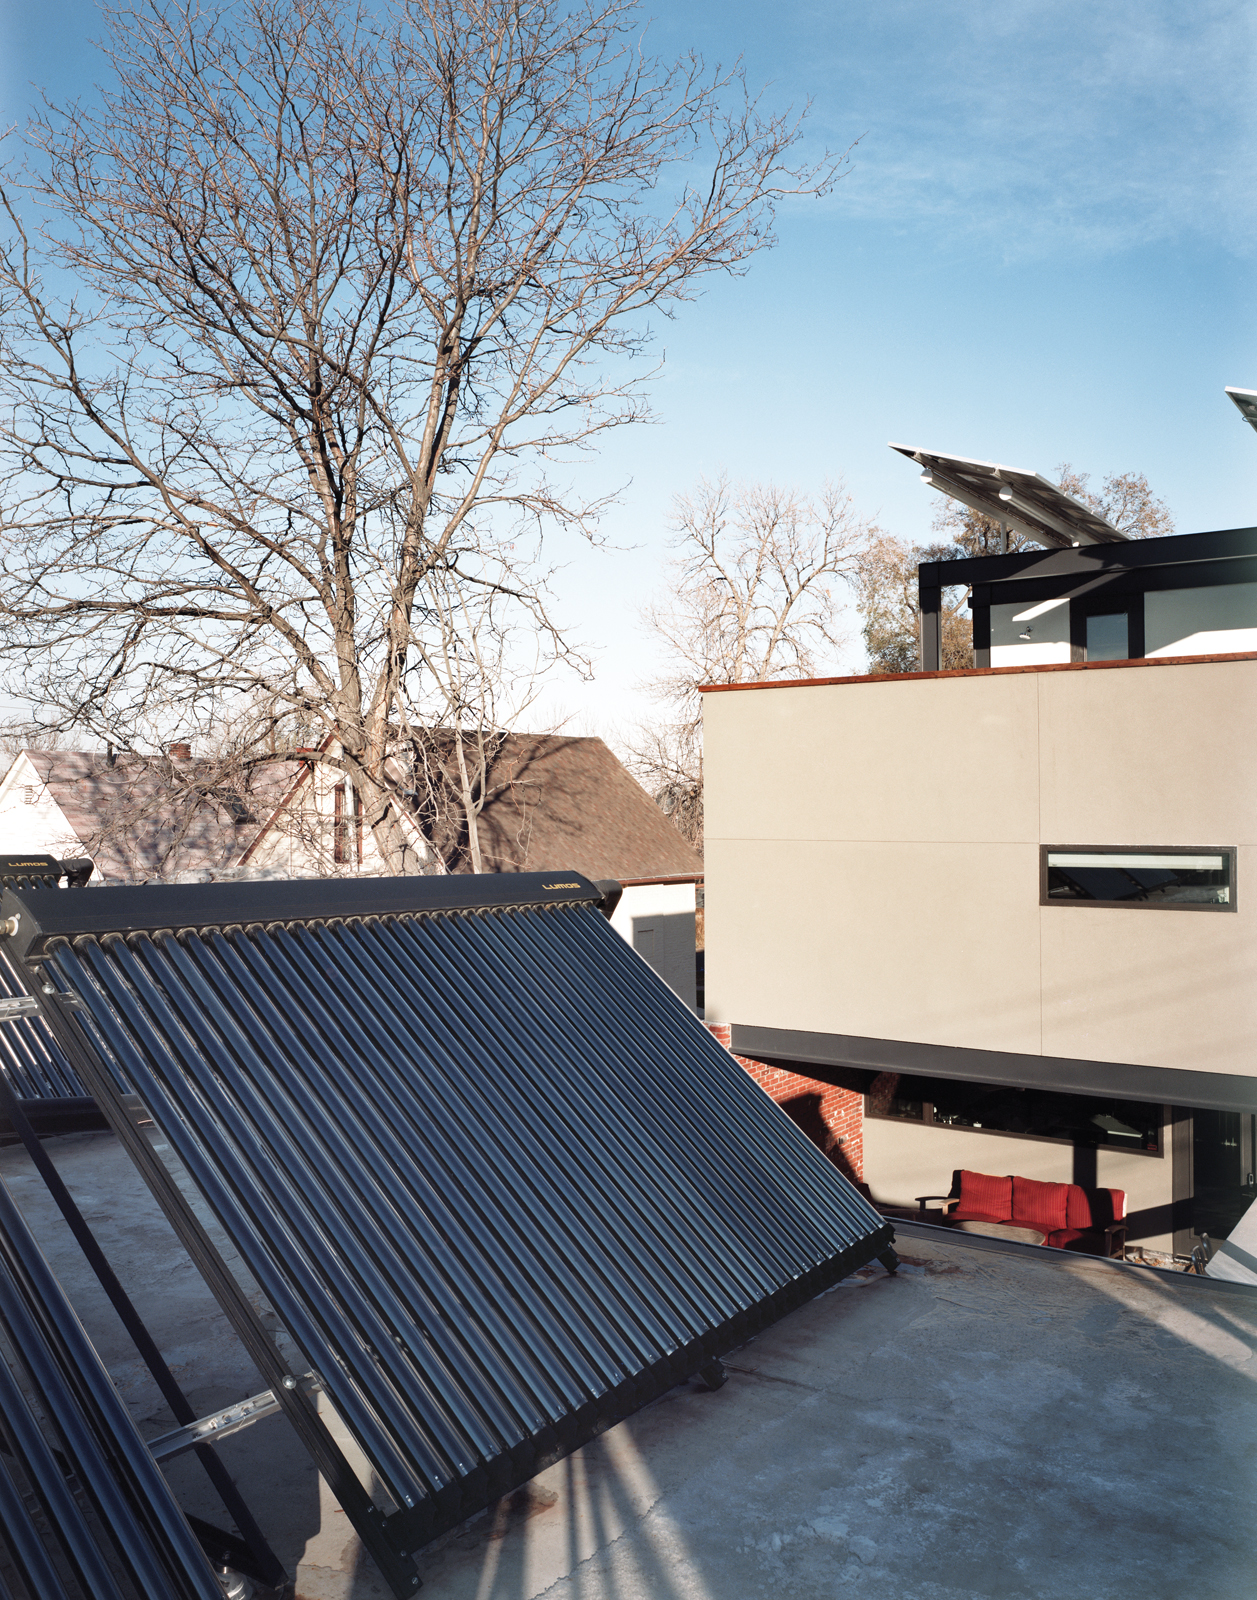 Garage with solar thermal tubes and photovoltaic panels